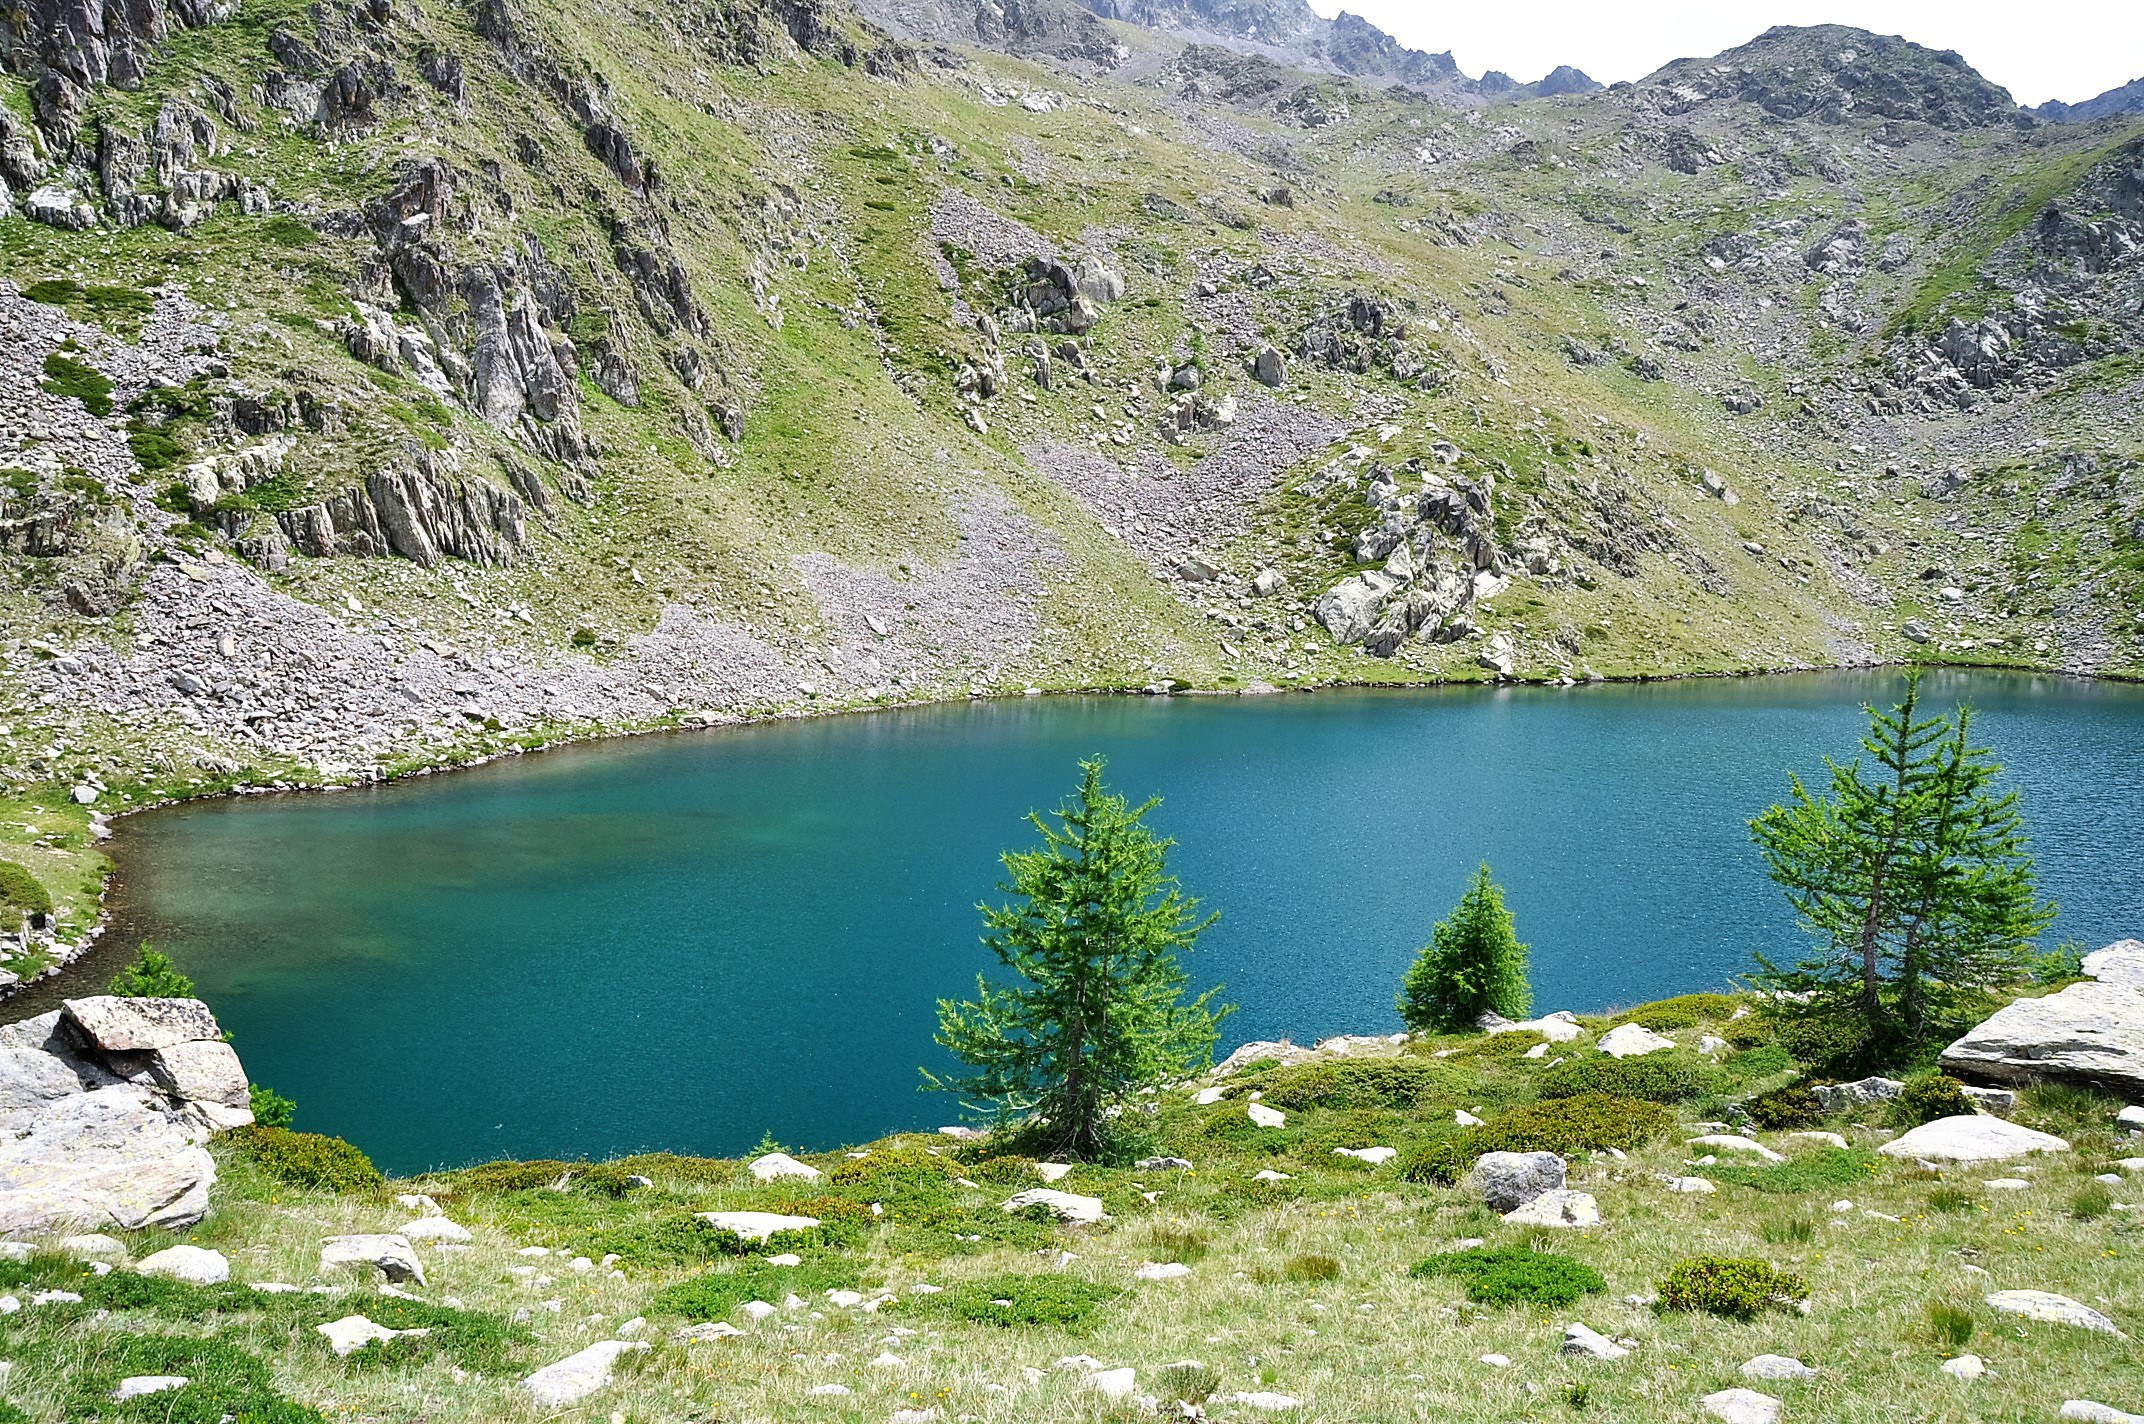 Lac des Babarottes